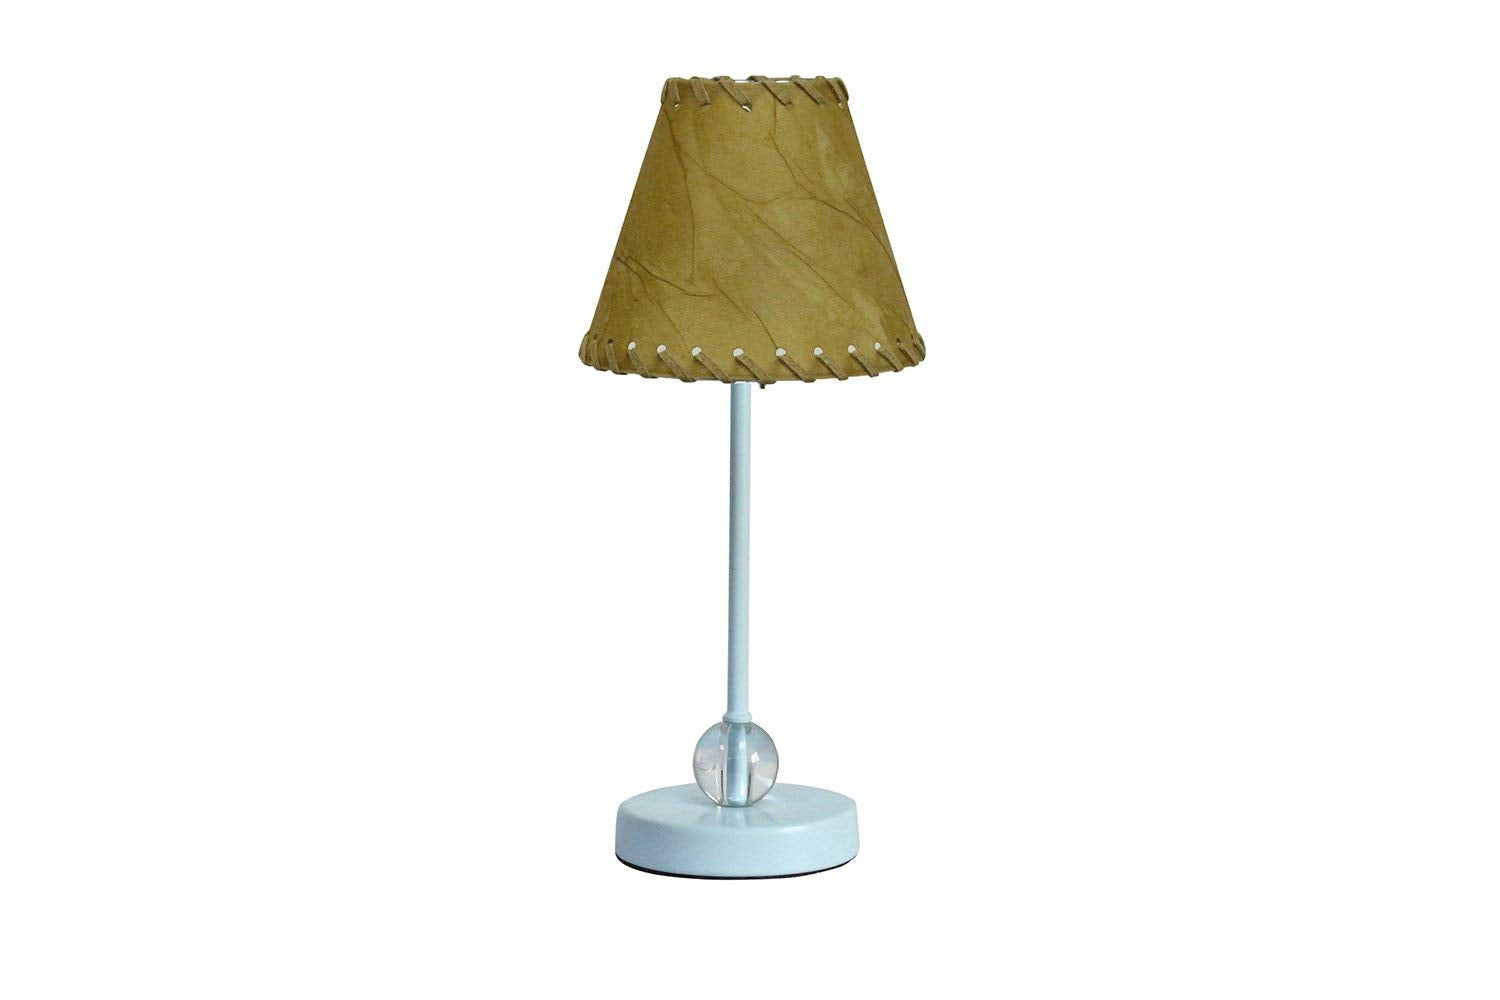 Chelsea Mini Accent Lamp with Faux Leather with Trim Lamp Shade